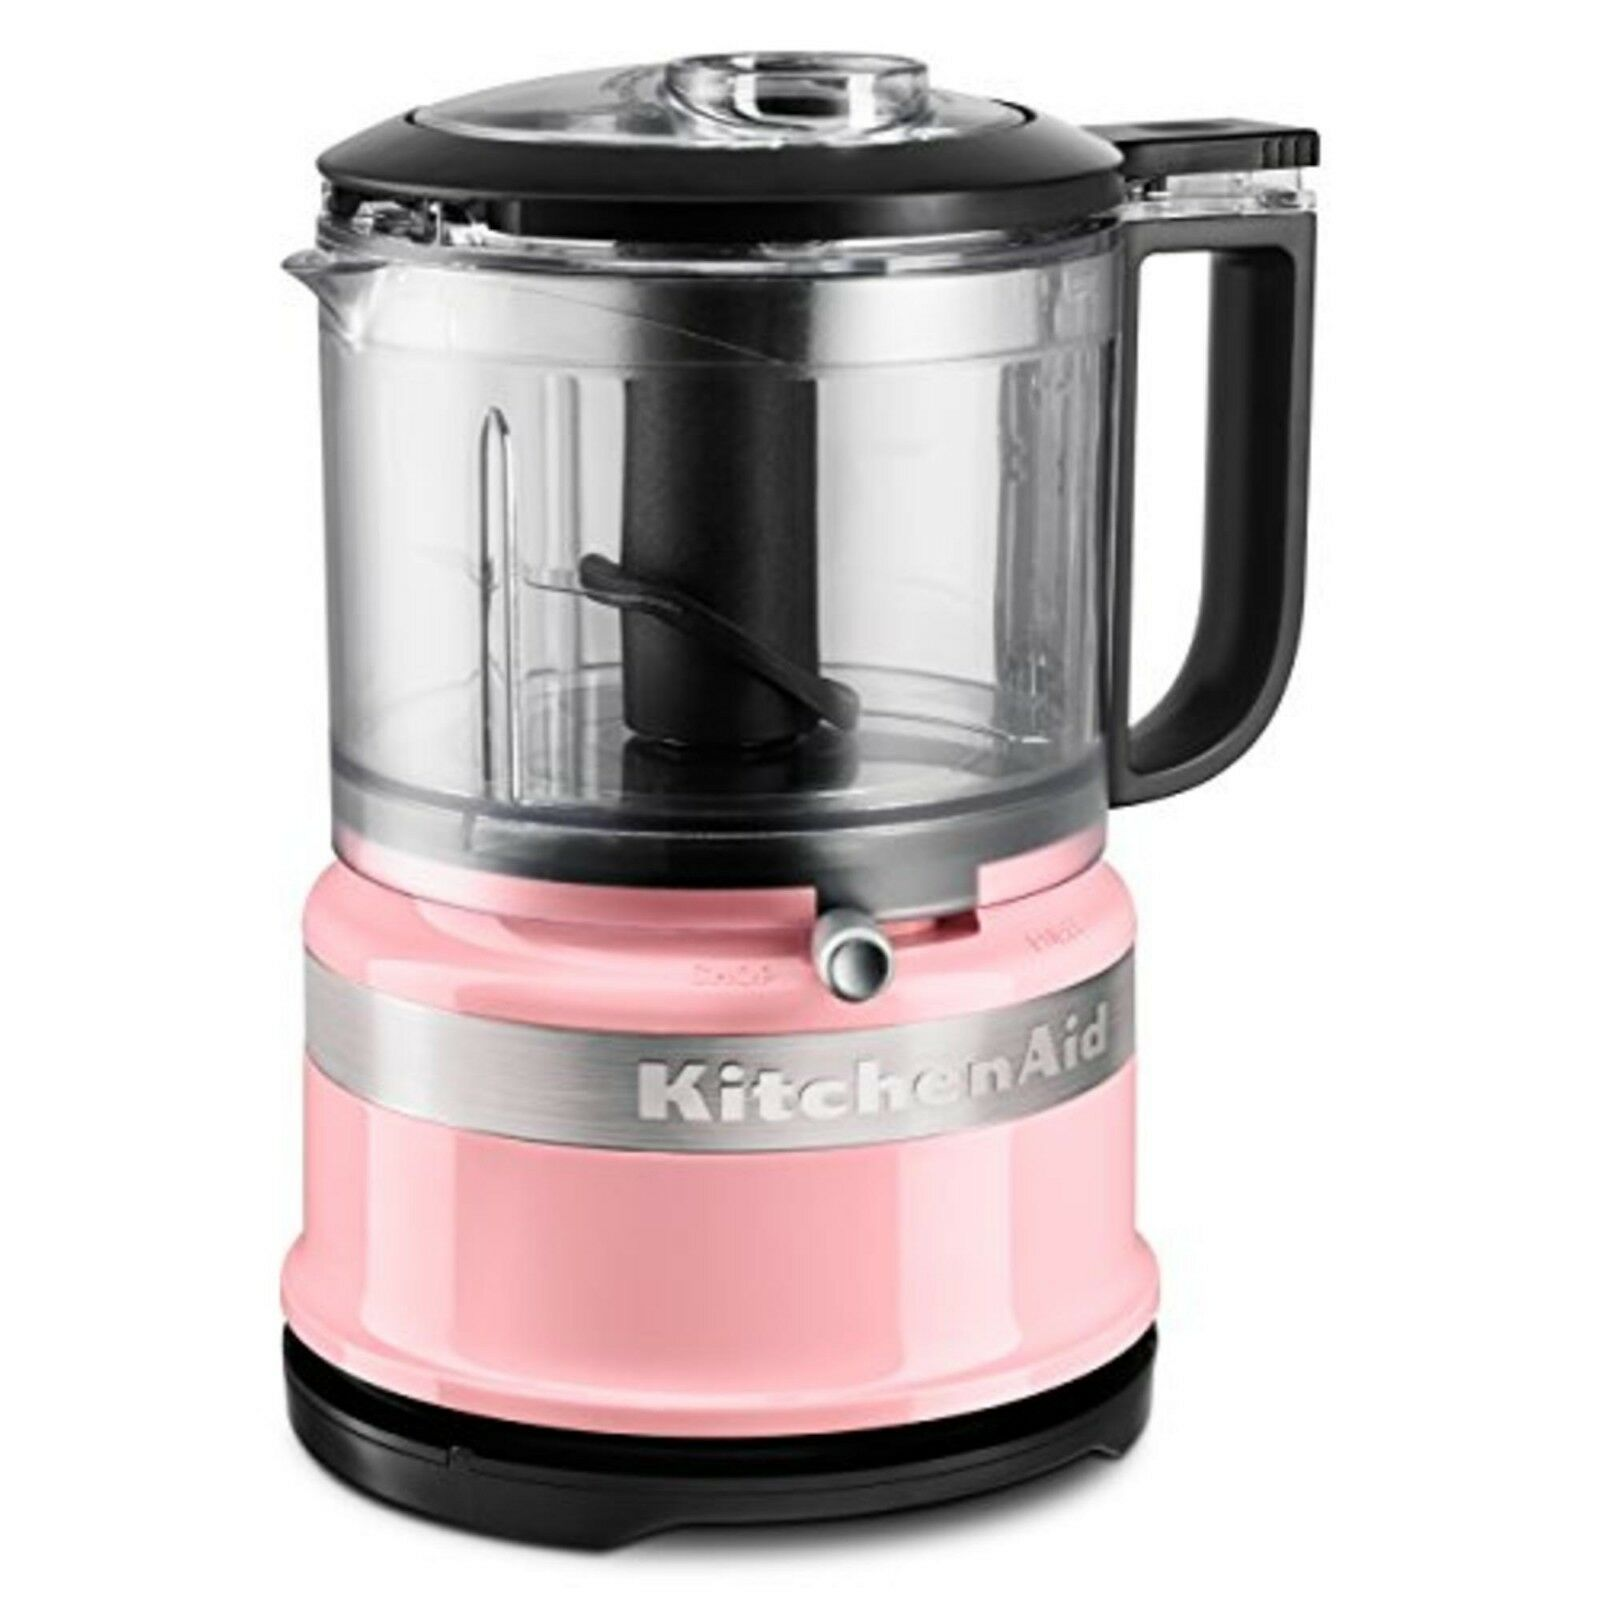 KitchenAid KFC3516AQ 3.5 Cup Mini Food Processor, Aqua Sky B